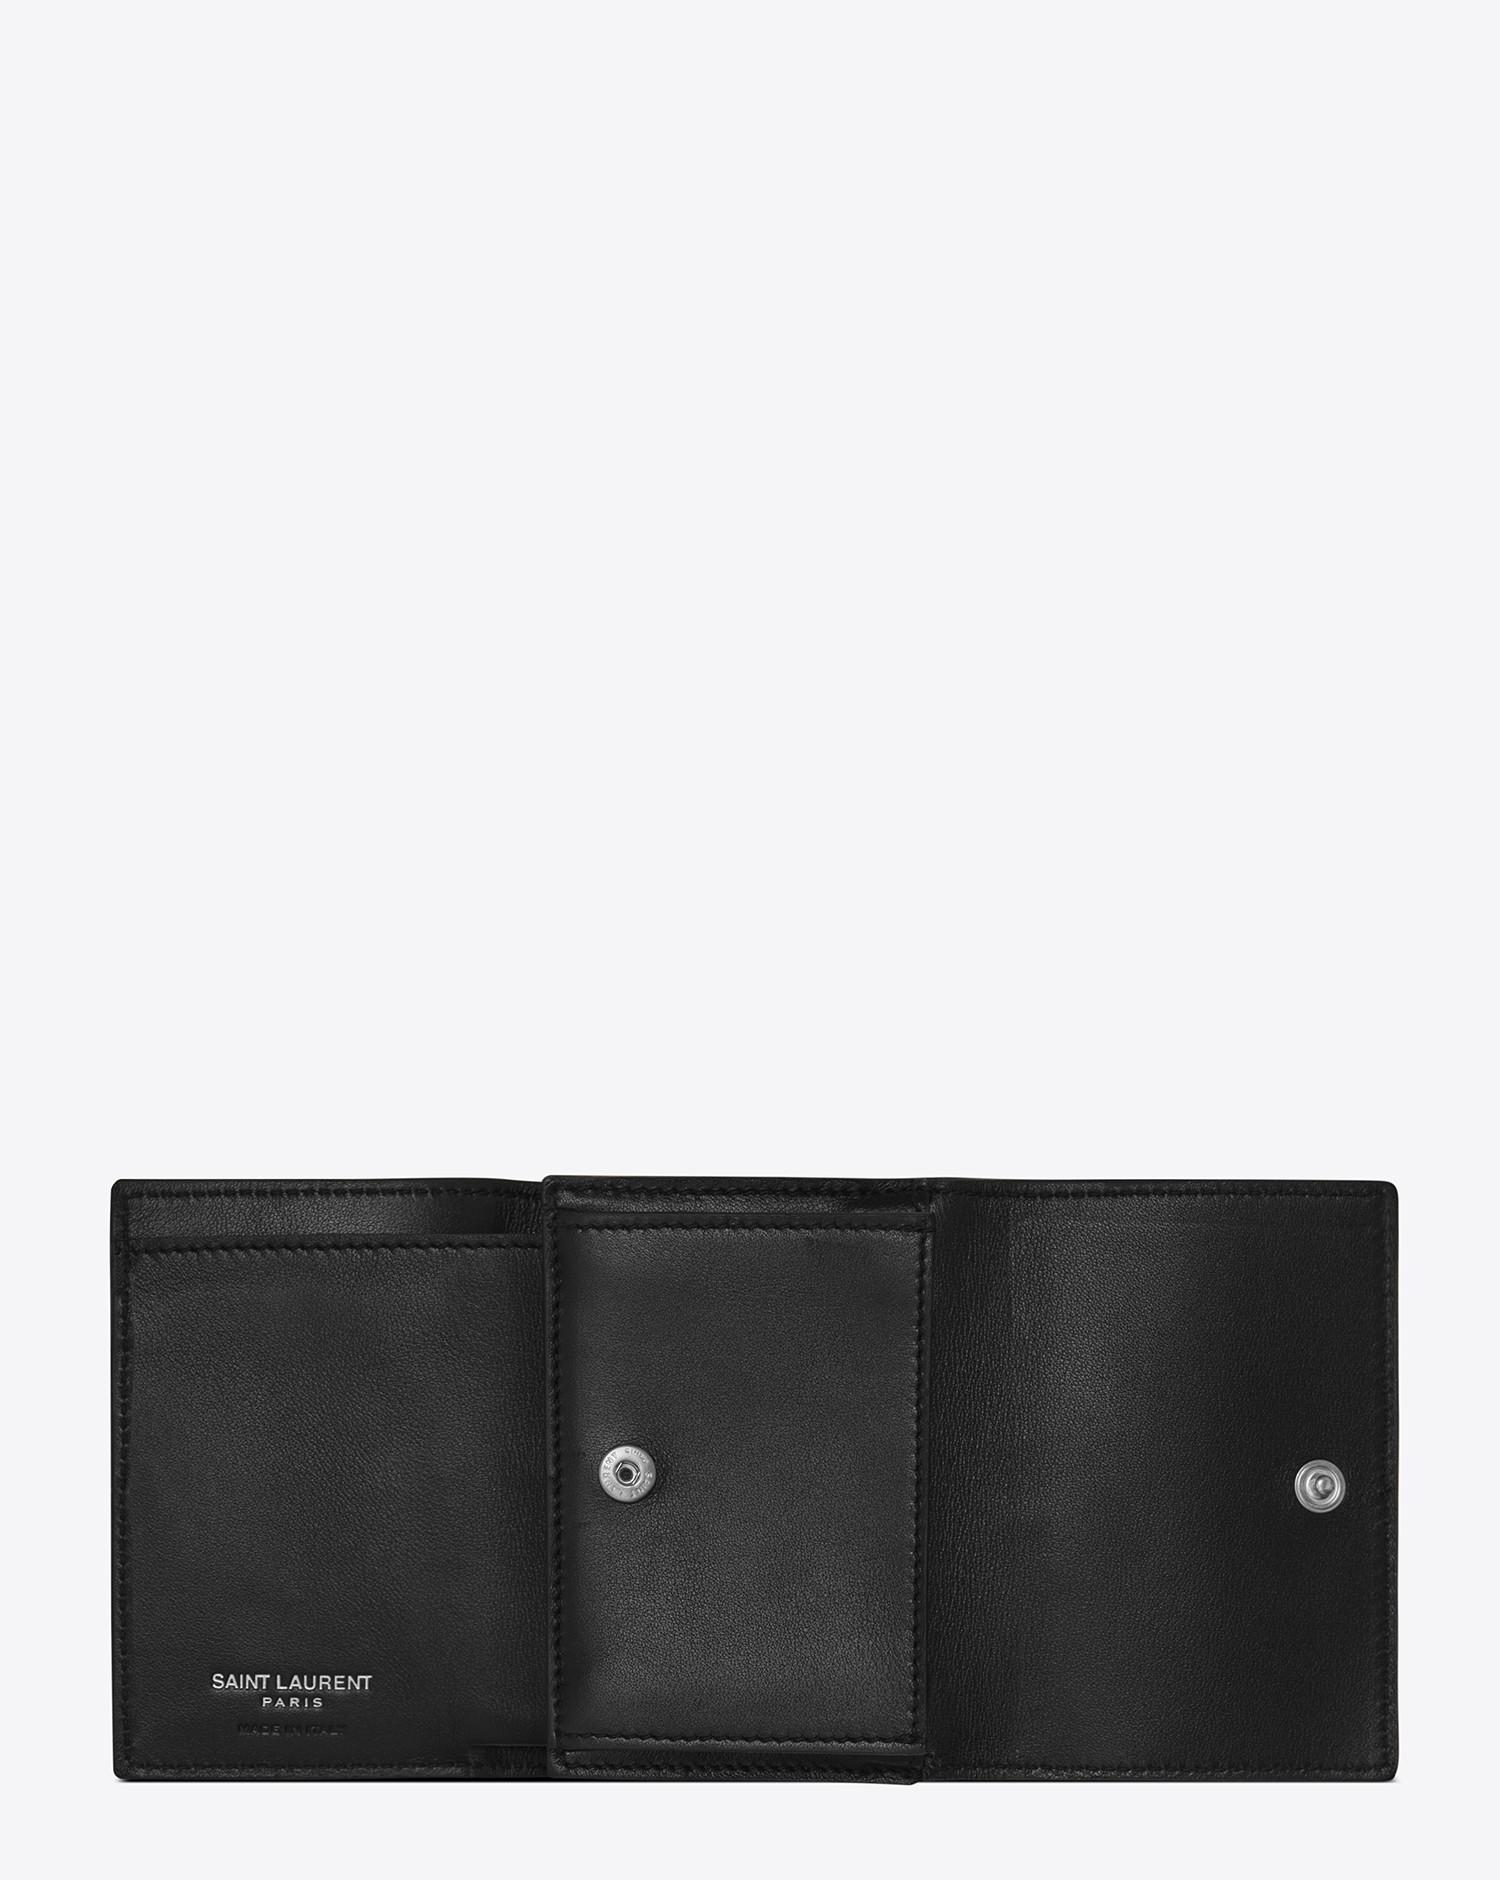 9ec62c9370a8e Lyst - Saint Laurent Id Tiny Wallet In Smooth Leather in Black for Men